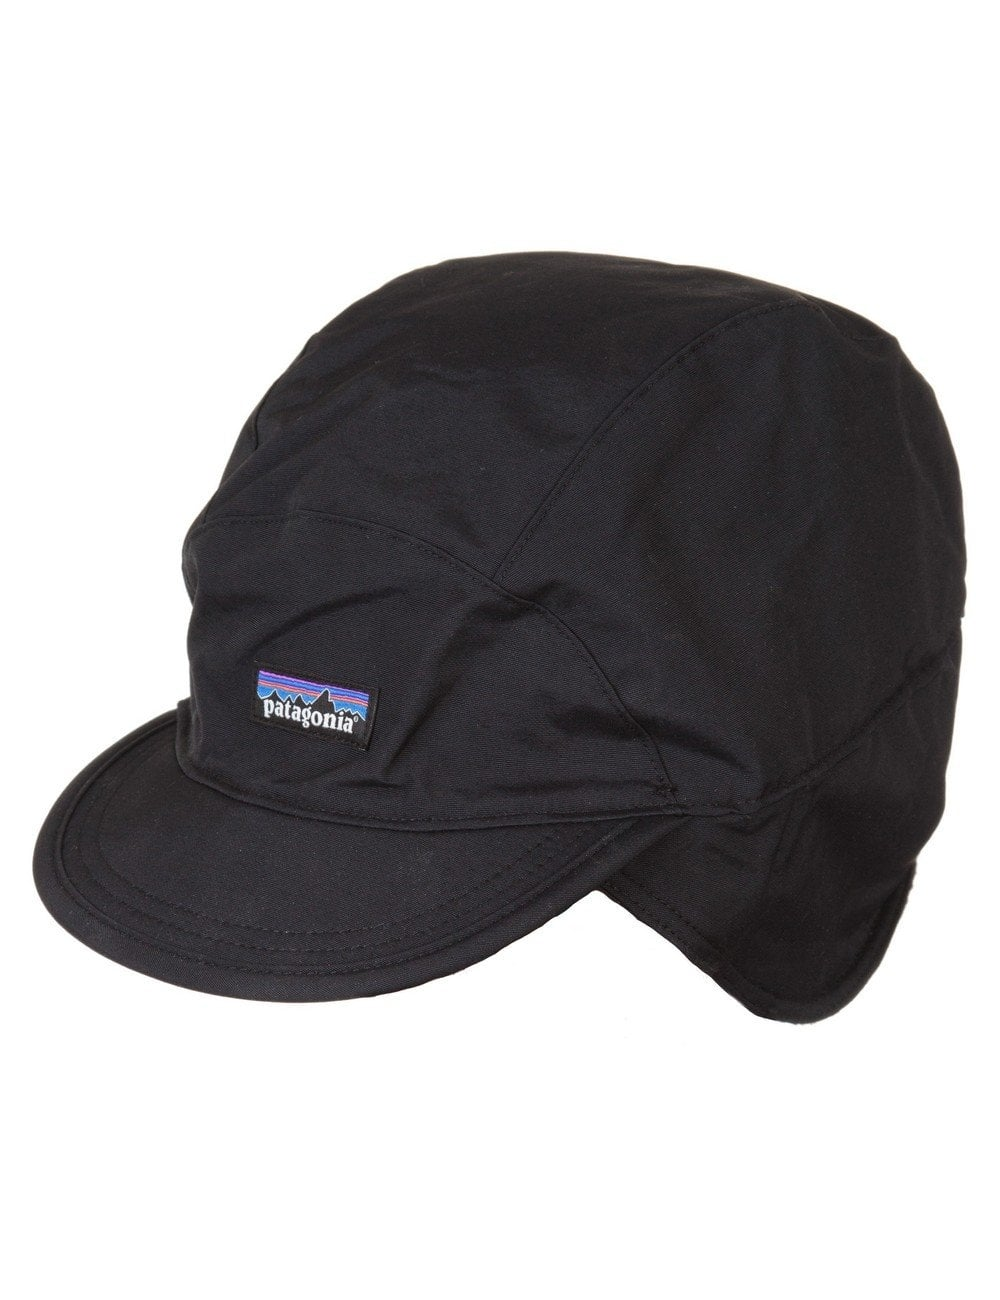 65945bcf822ff Patagonia Shelled Synchilla Duckbill Cap - Black - Accessories from ...